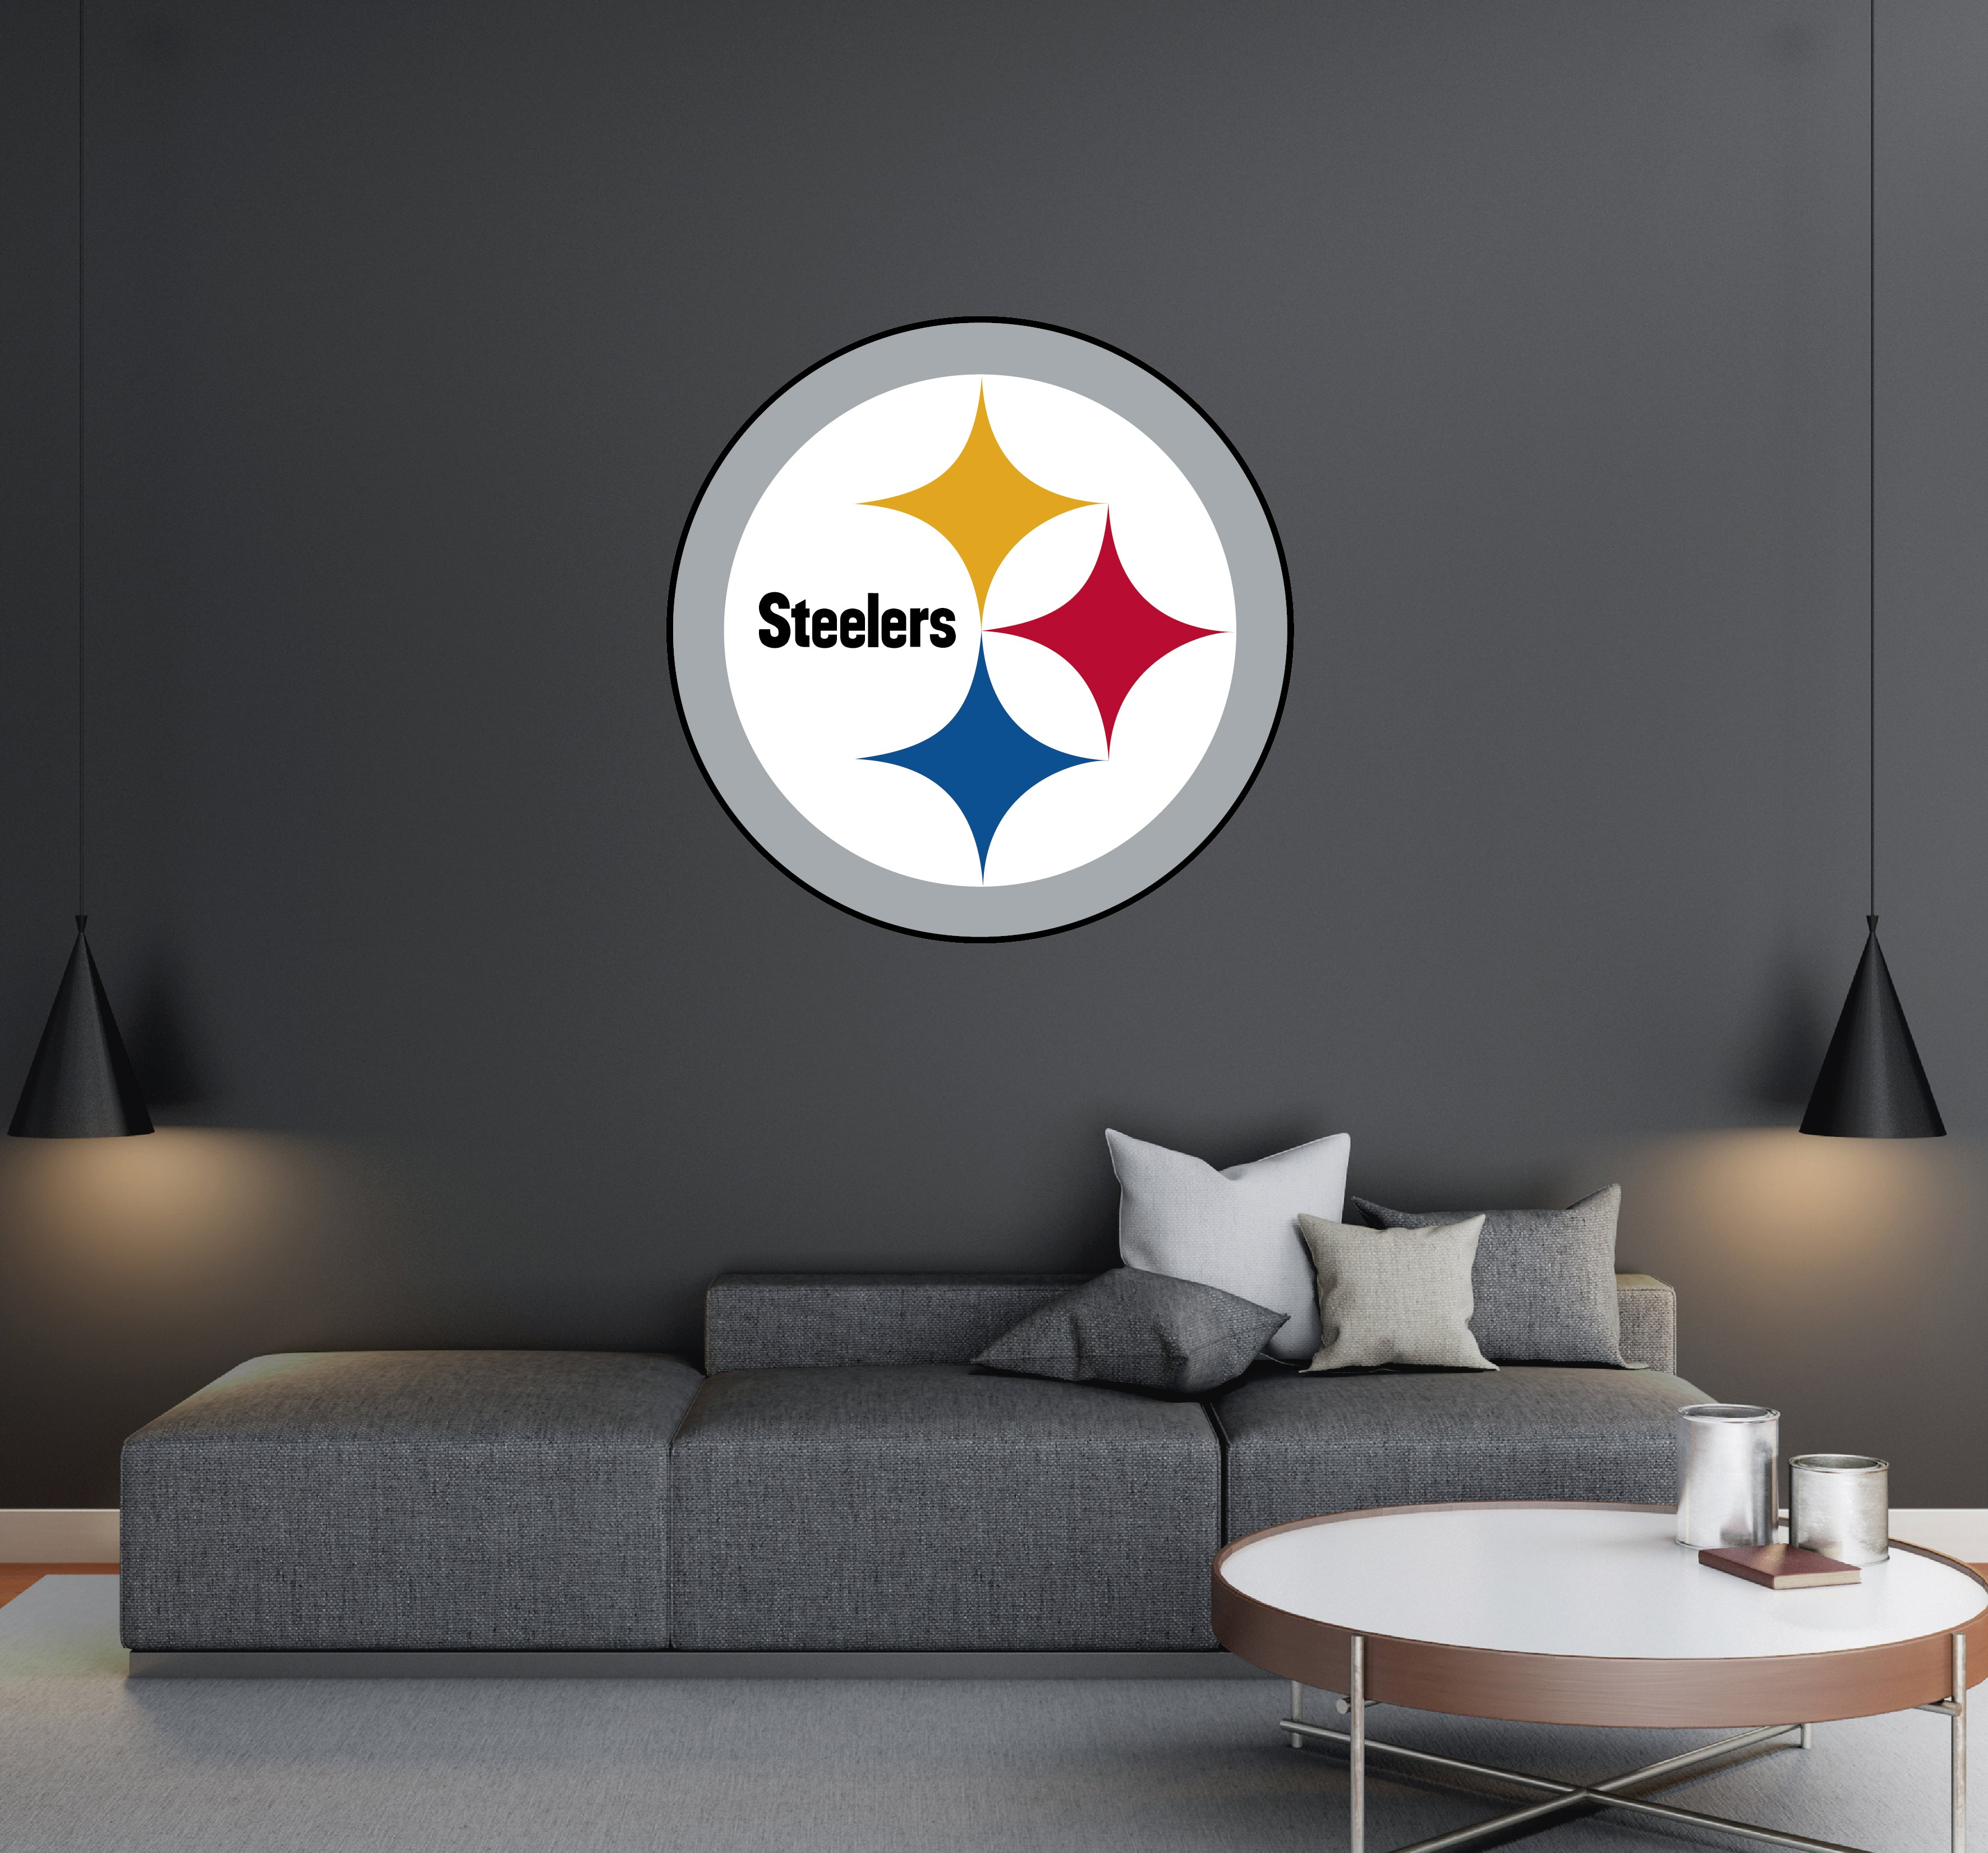 Pittsburgh Steelers - NFL Football Team Logo - Wall Decal Removable & Reusable For Home Bedroom